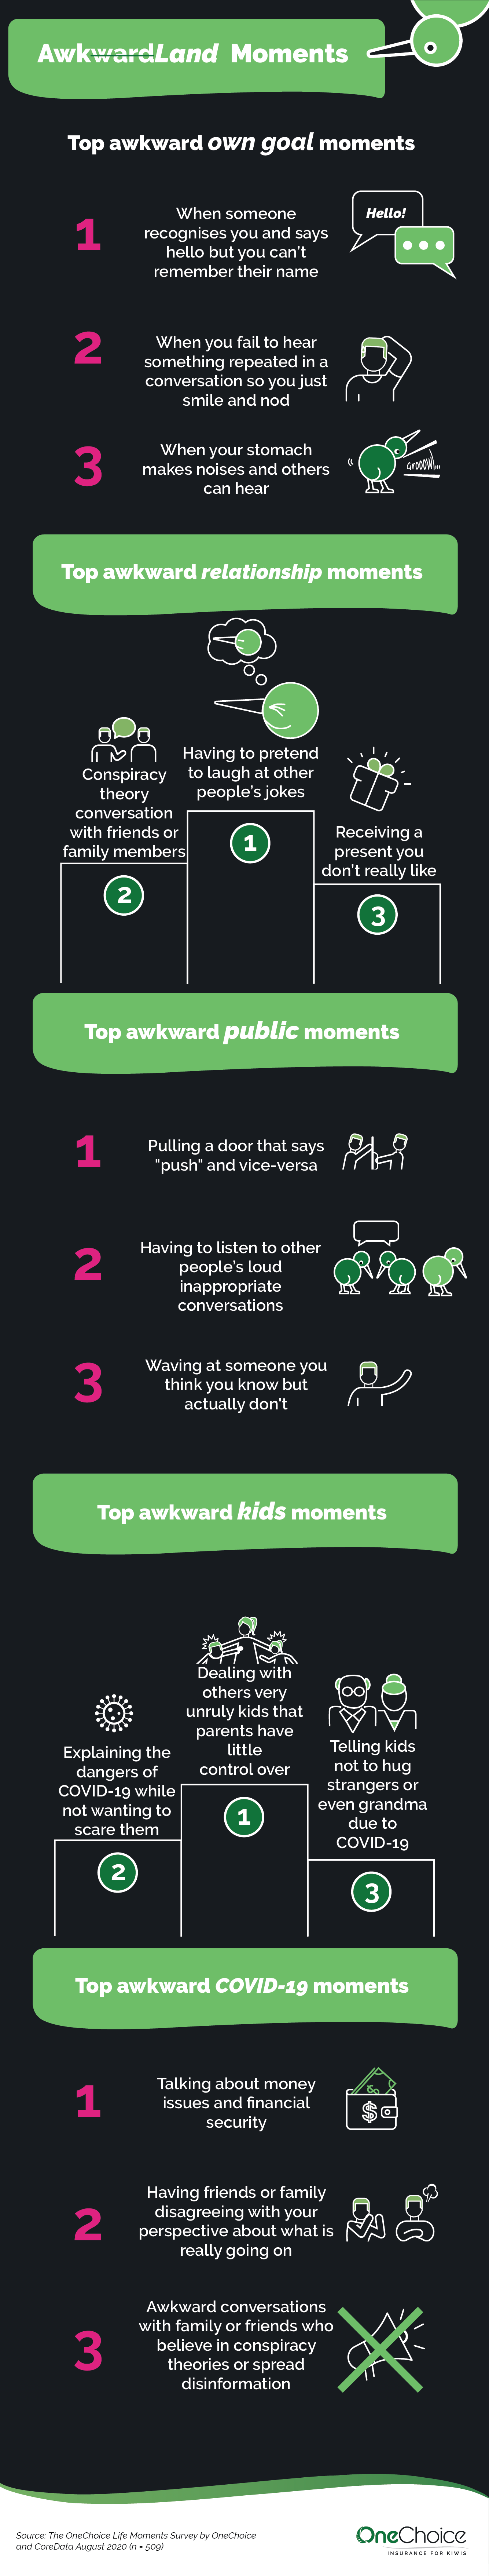 awkland moments infographic